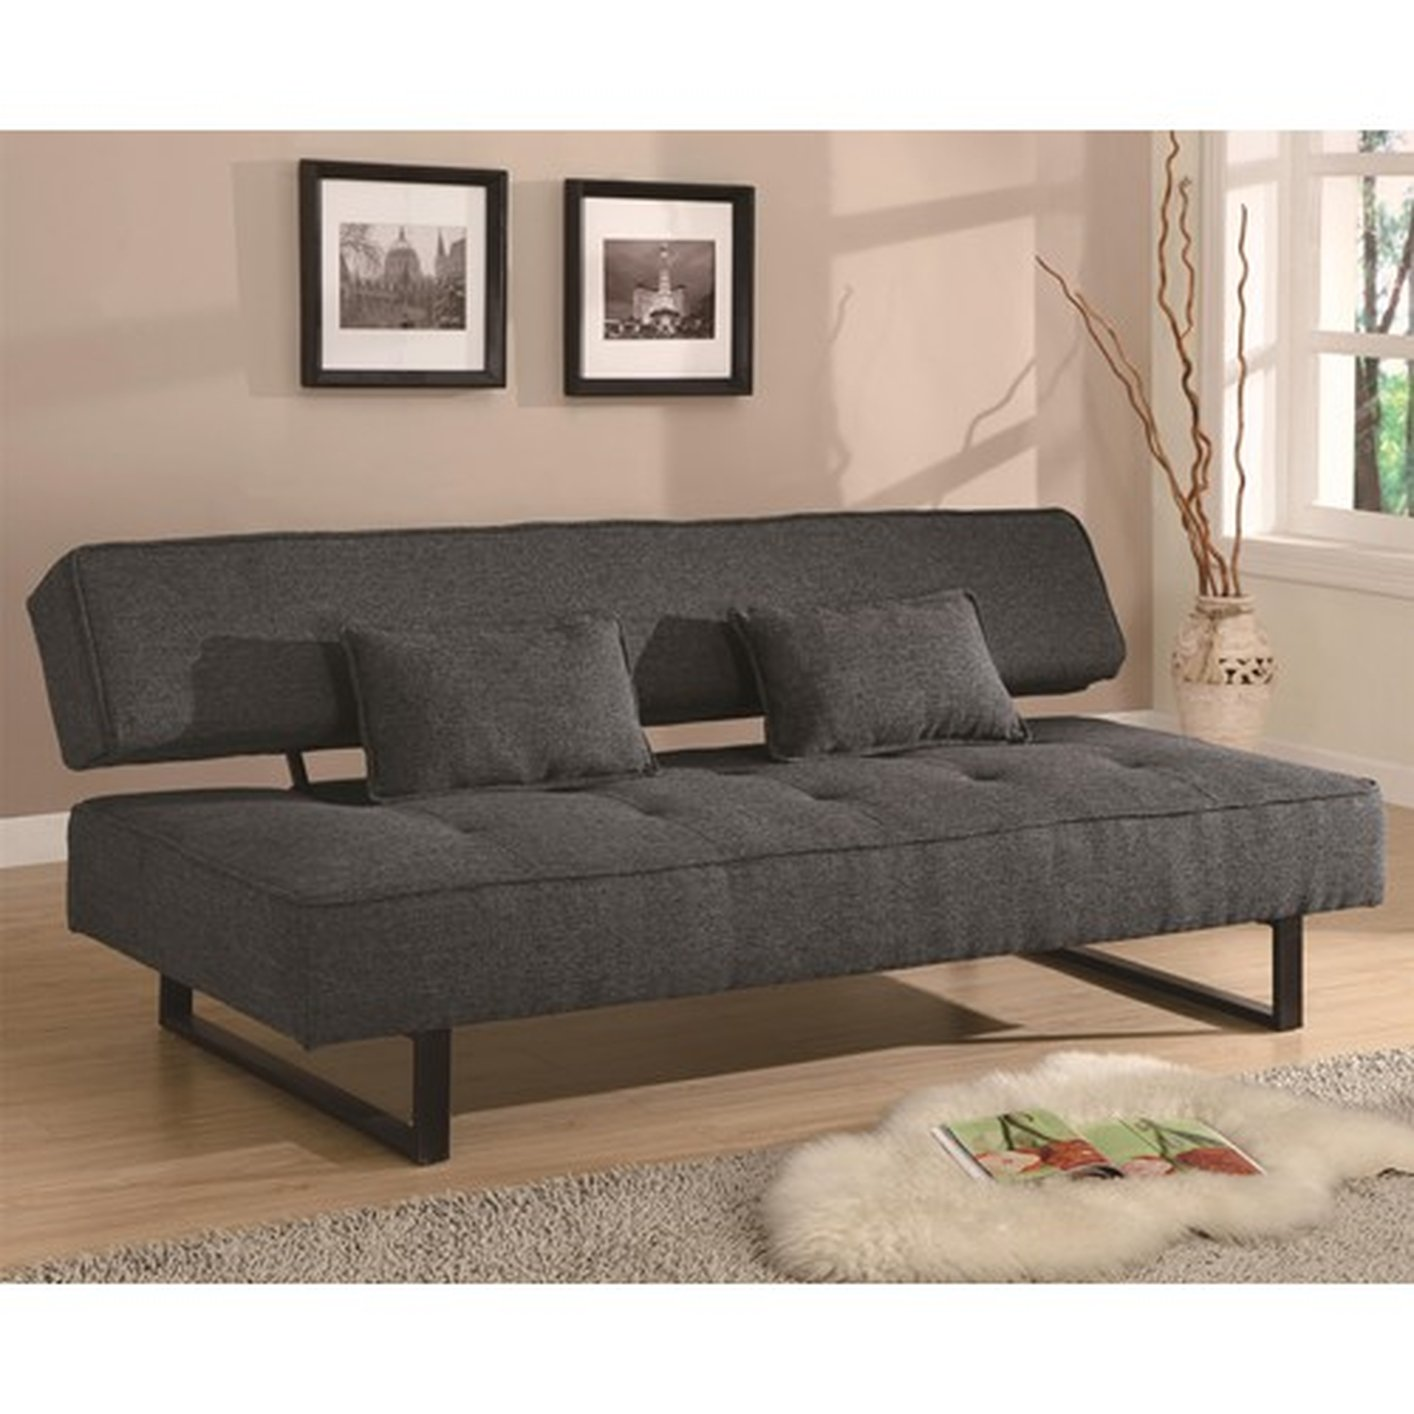 Coaster 300137 Grey Full Size Fabric Sofa Bed - Steal-A ...